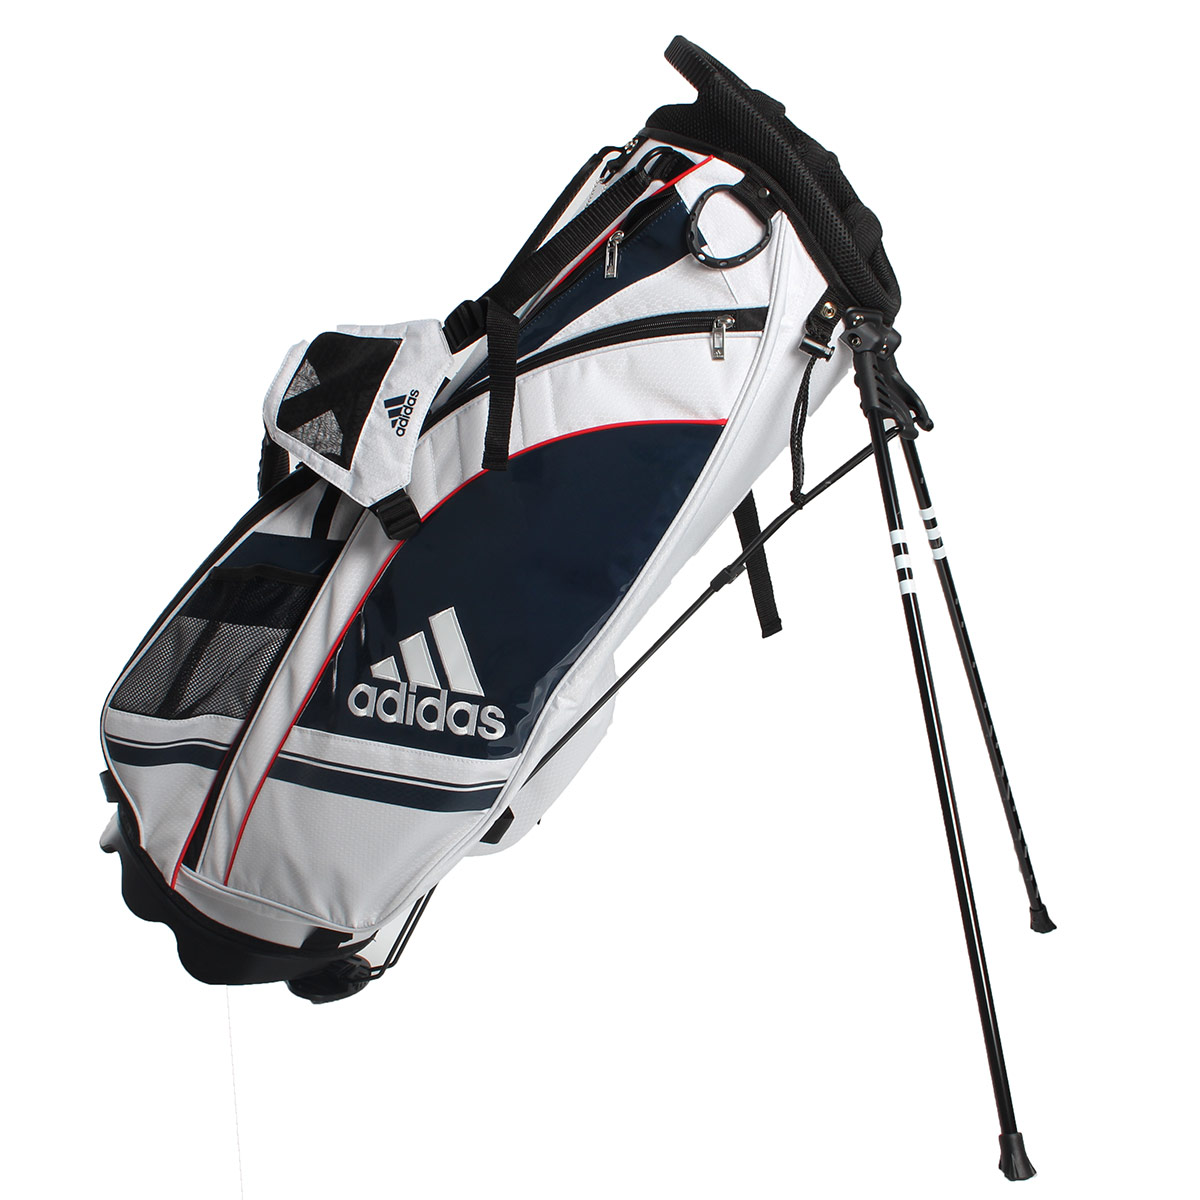 mitología Rezumar petróleo  adidas golf bag Online Shopping for Women, Men, Kids Fashion &  Lifestyle|Free Delivery & Returns! -